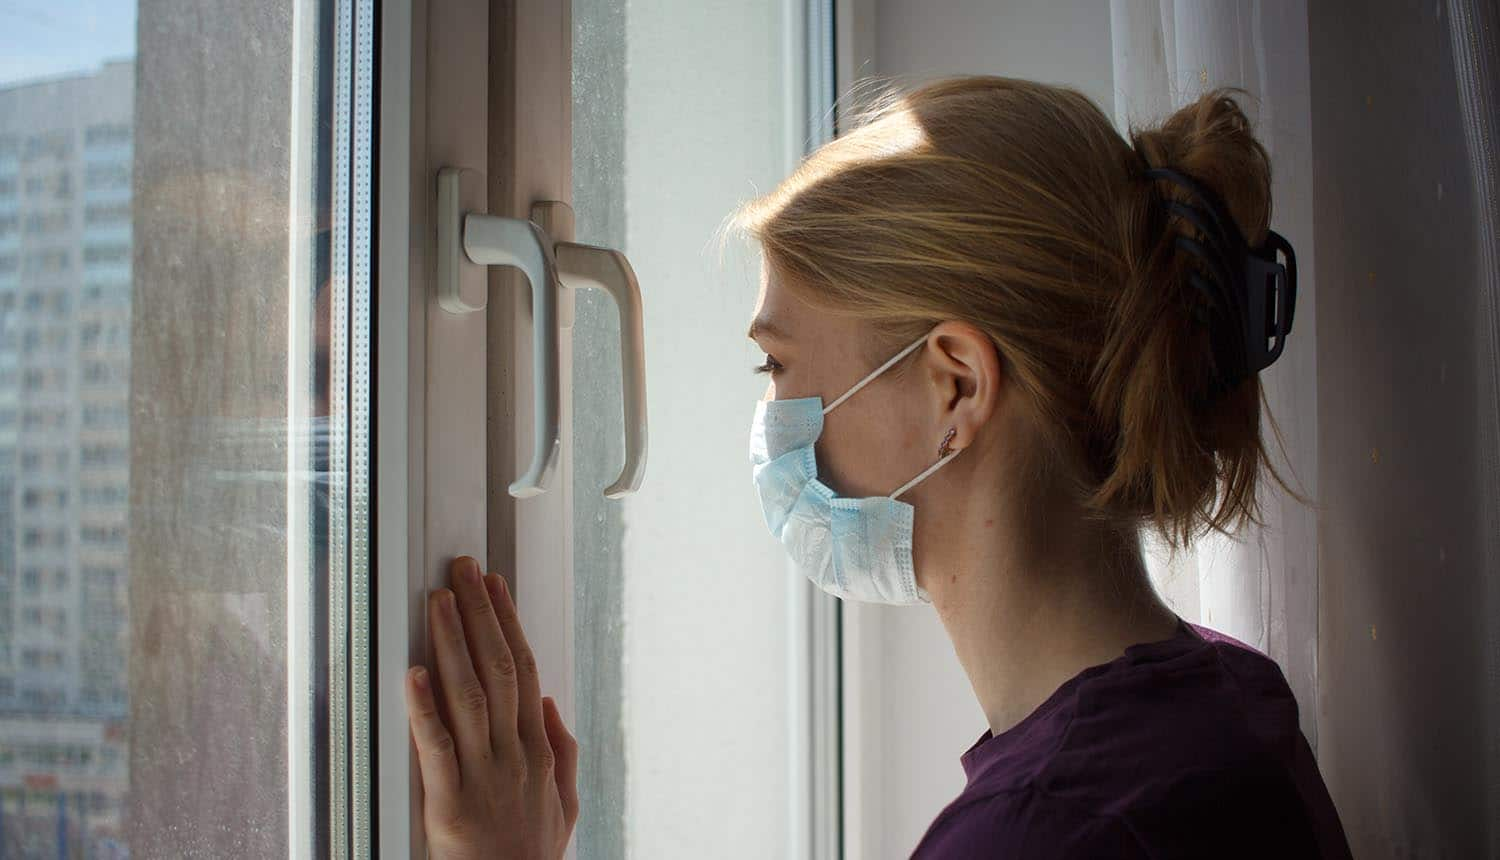 Woman with medical mask looks outside window